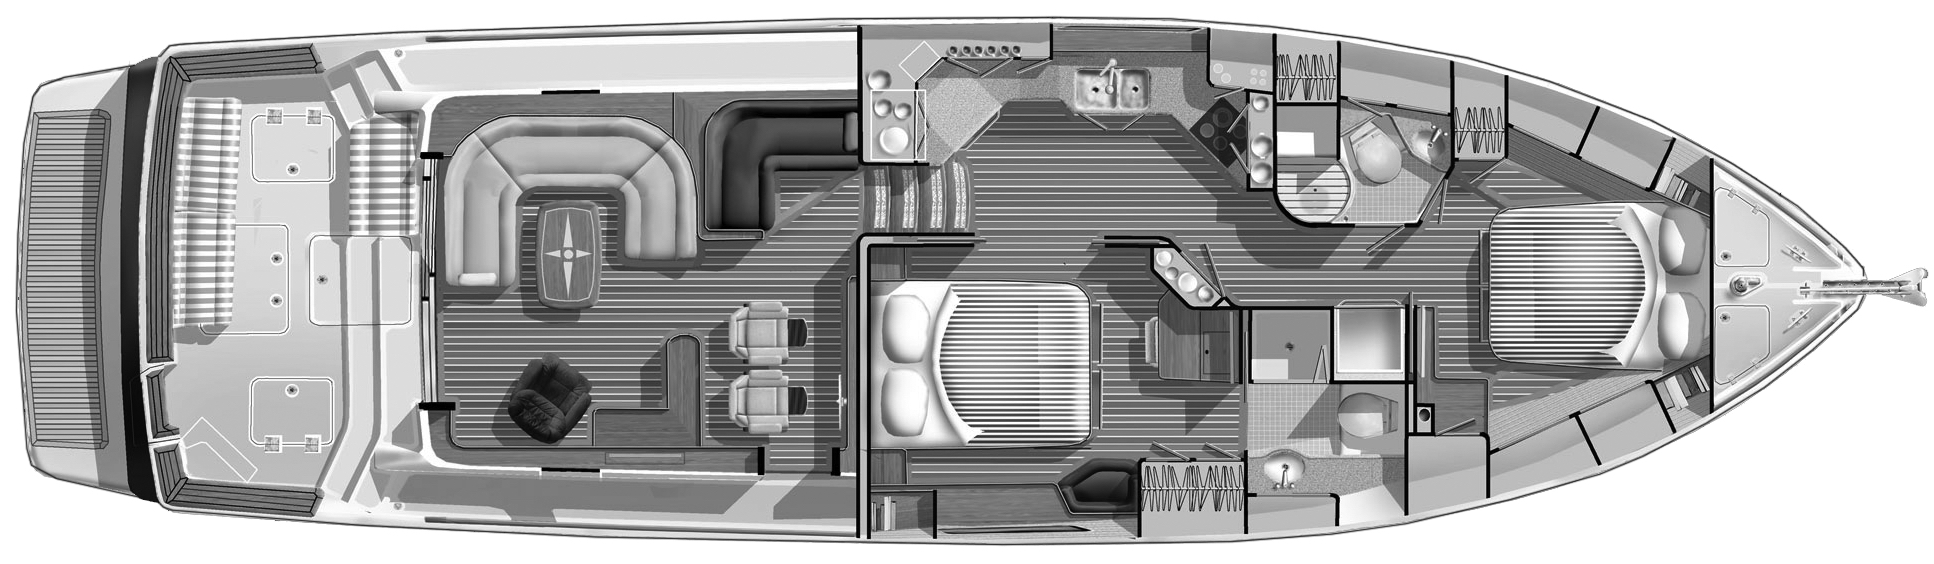 52-54 Salon Express Floor Plan 2